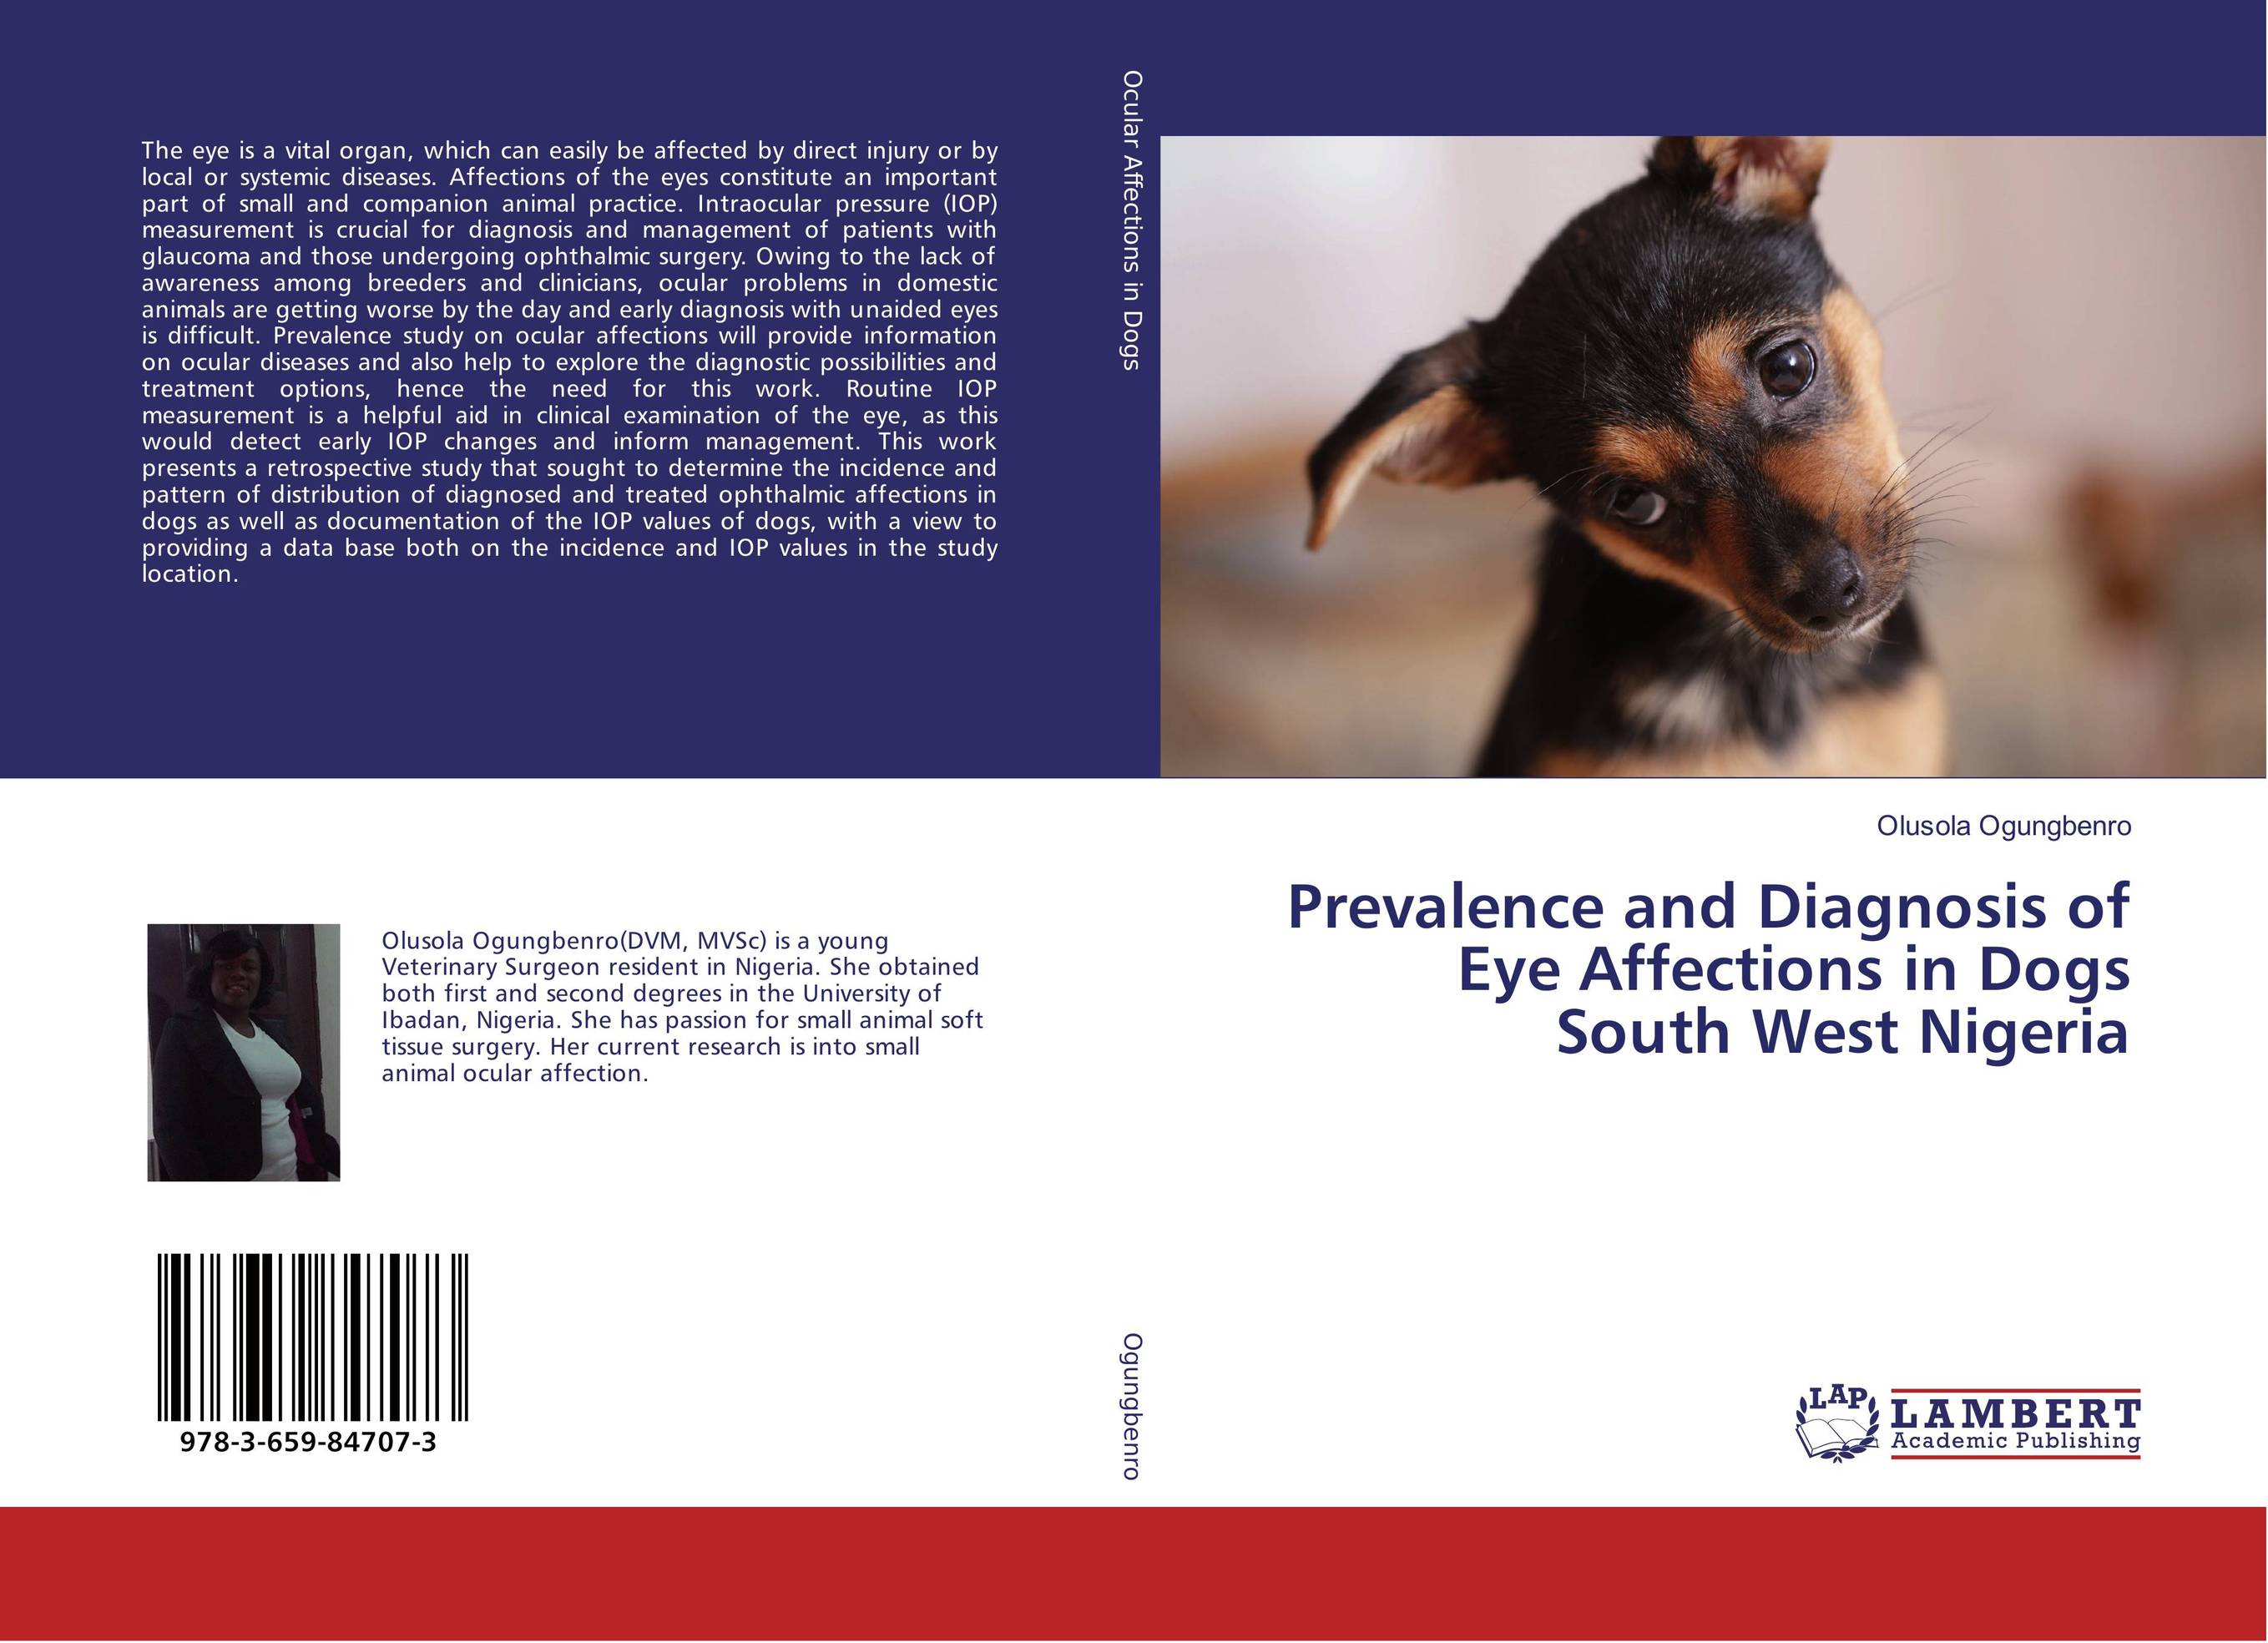 Prevalence and Diagnosis of Eye Affections in Dogs South West Nigeria clinical significance of electro diagnosis in disc herniation